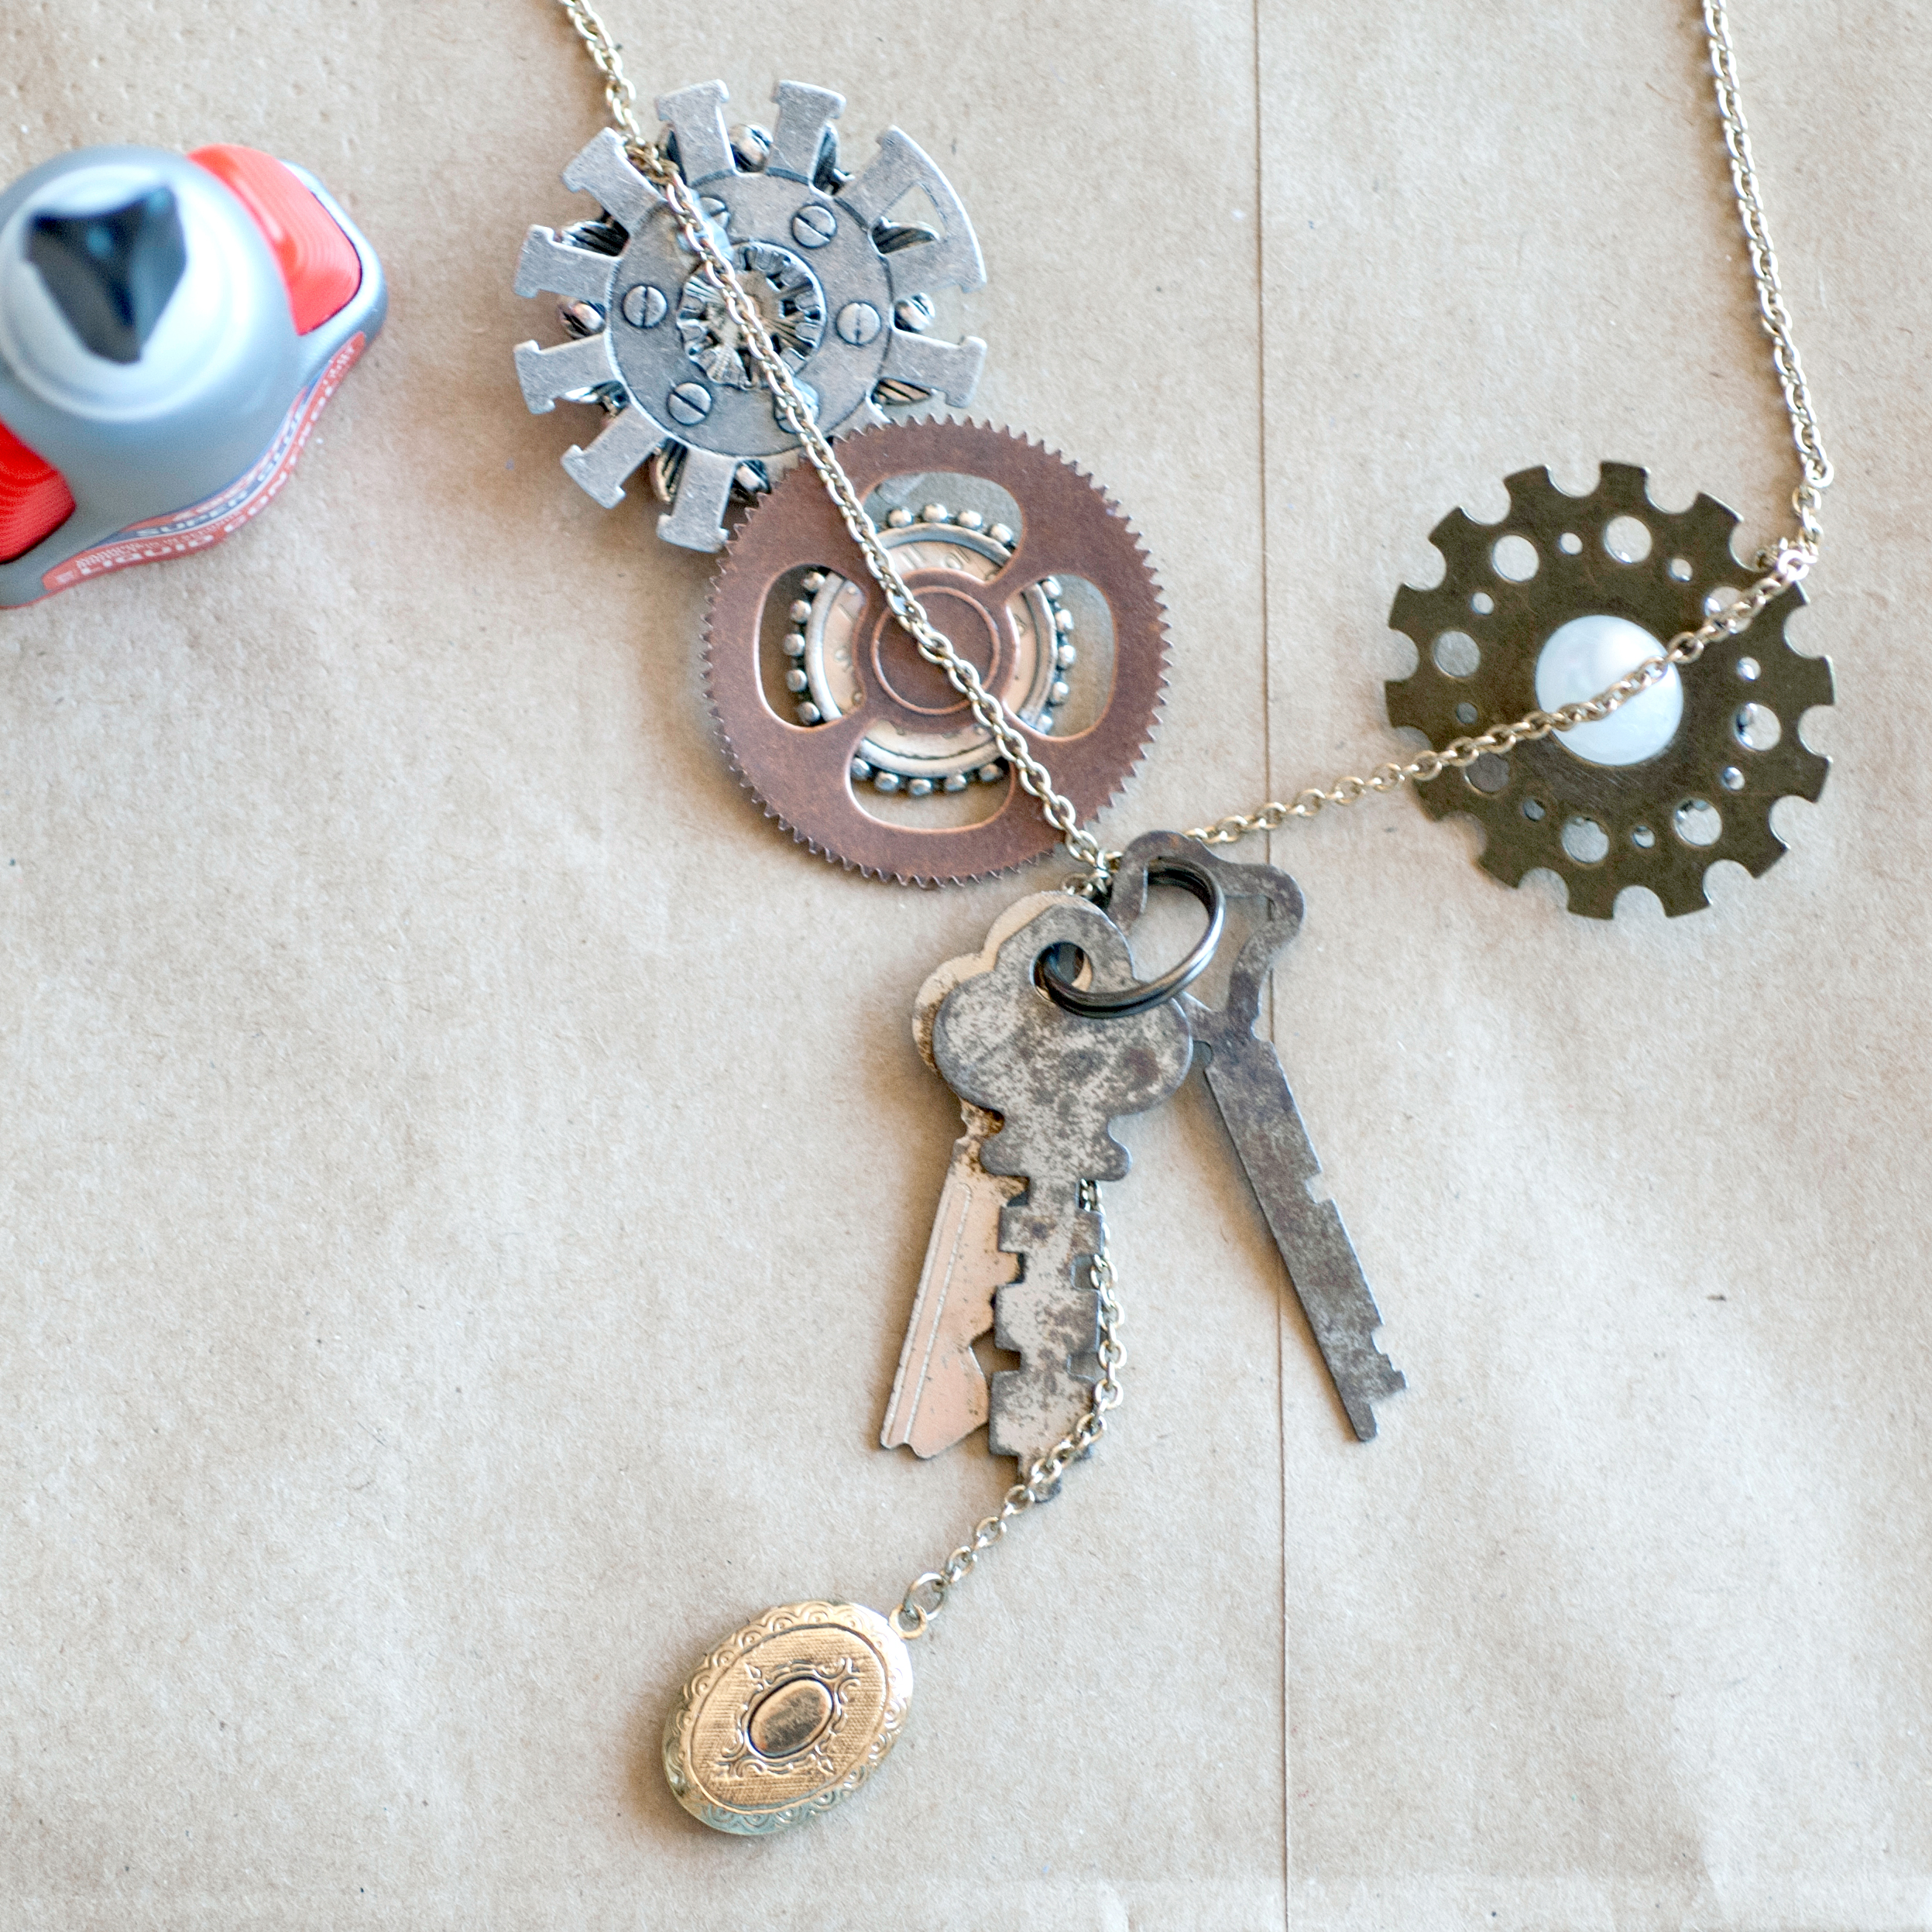 how to make your own steampunk jewelry